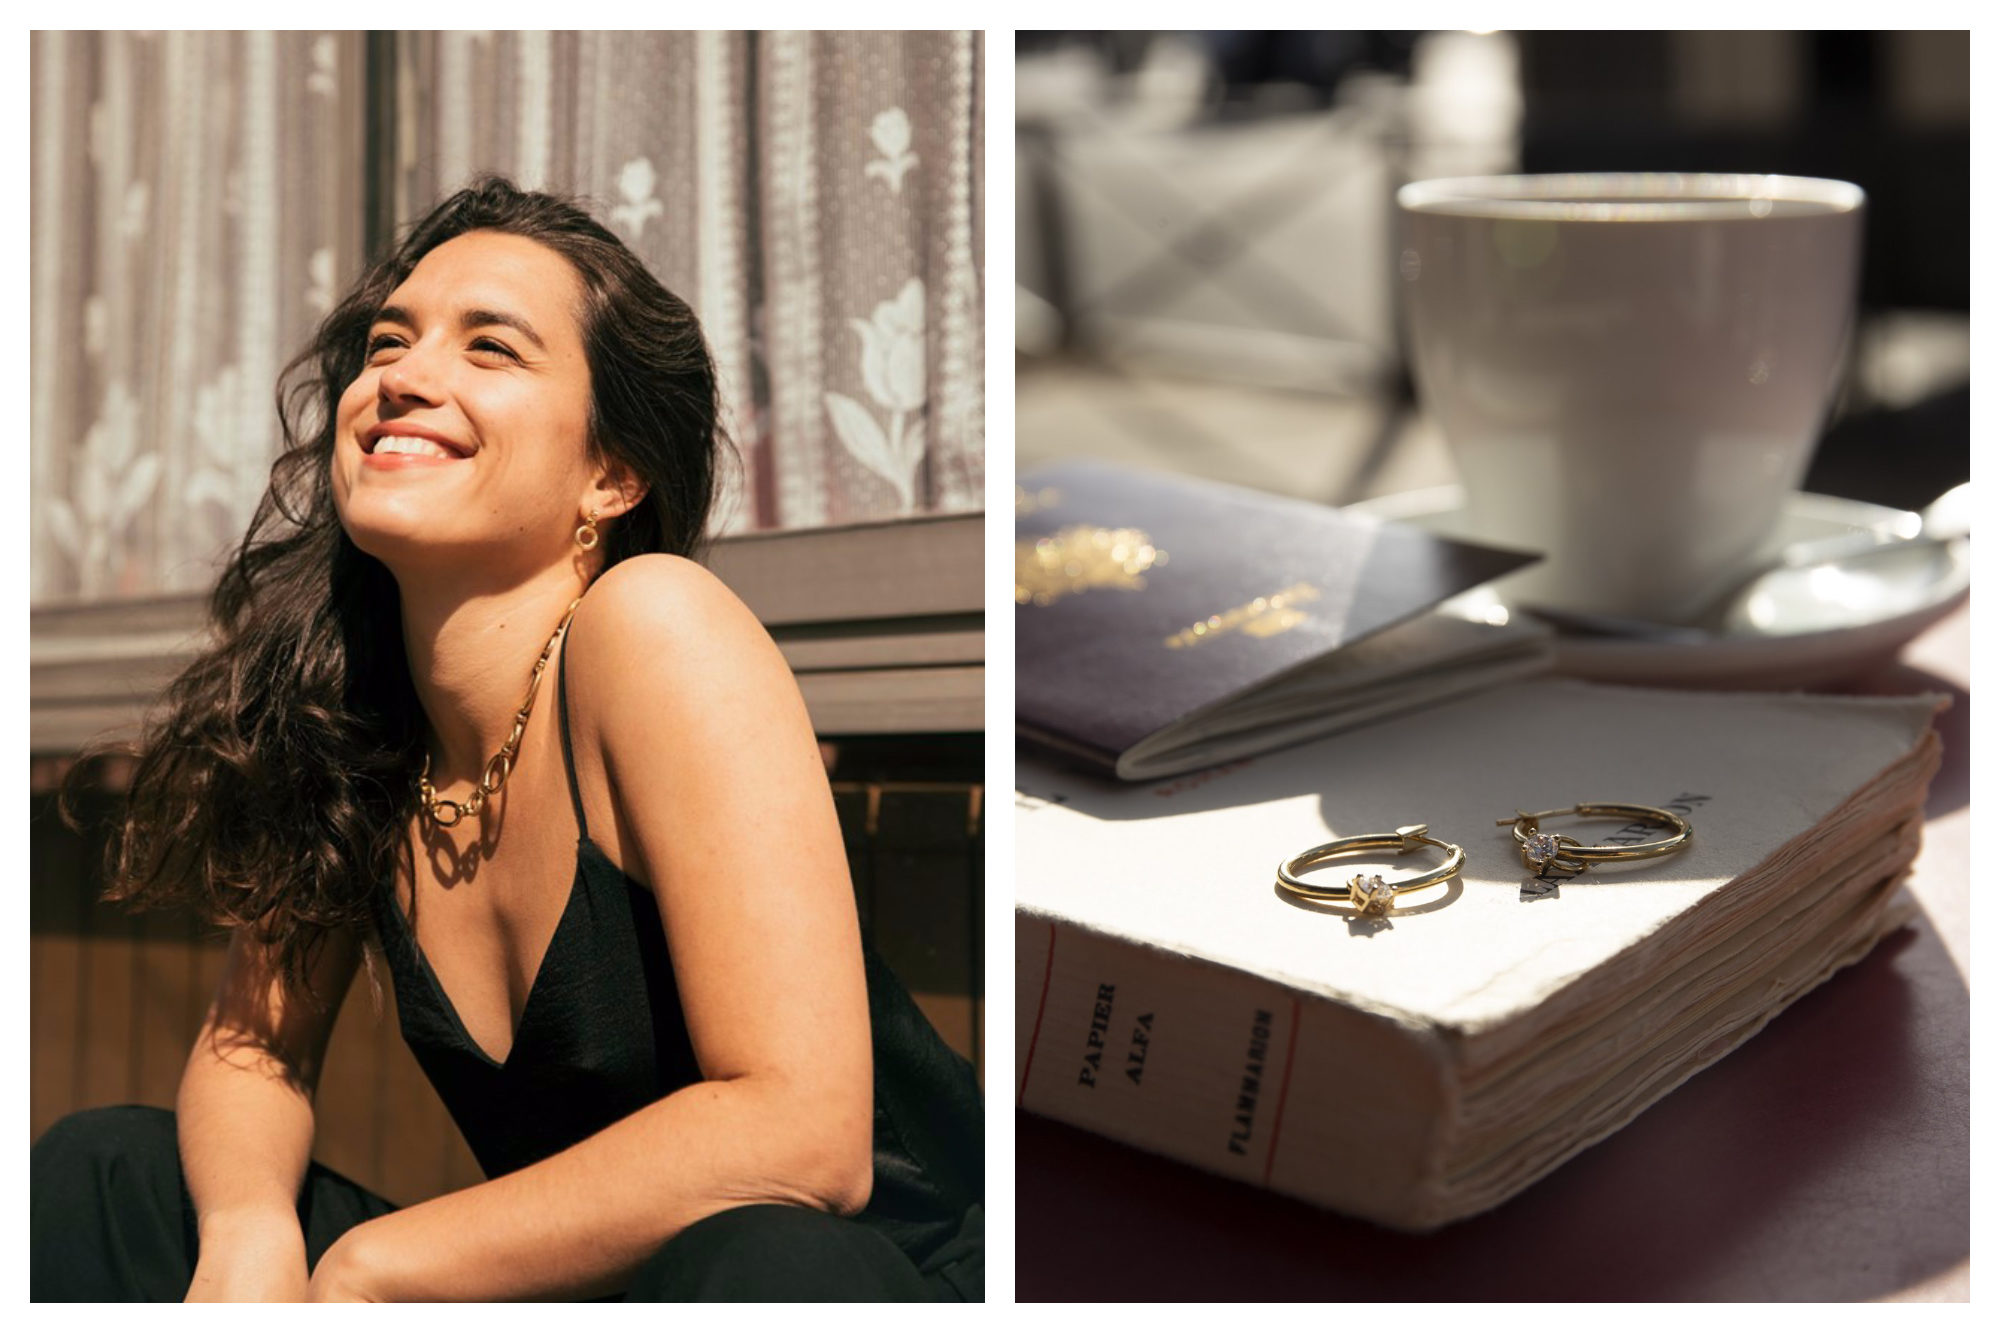 A girl smiling in the sunshine, wearing a gold chain Louise Damas necklace (left). Two gold rings resting on a book with a passport and a cup of coffee in the background (right).